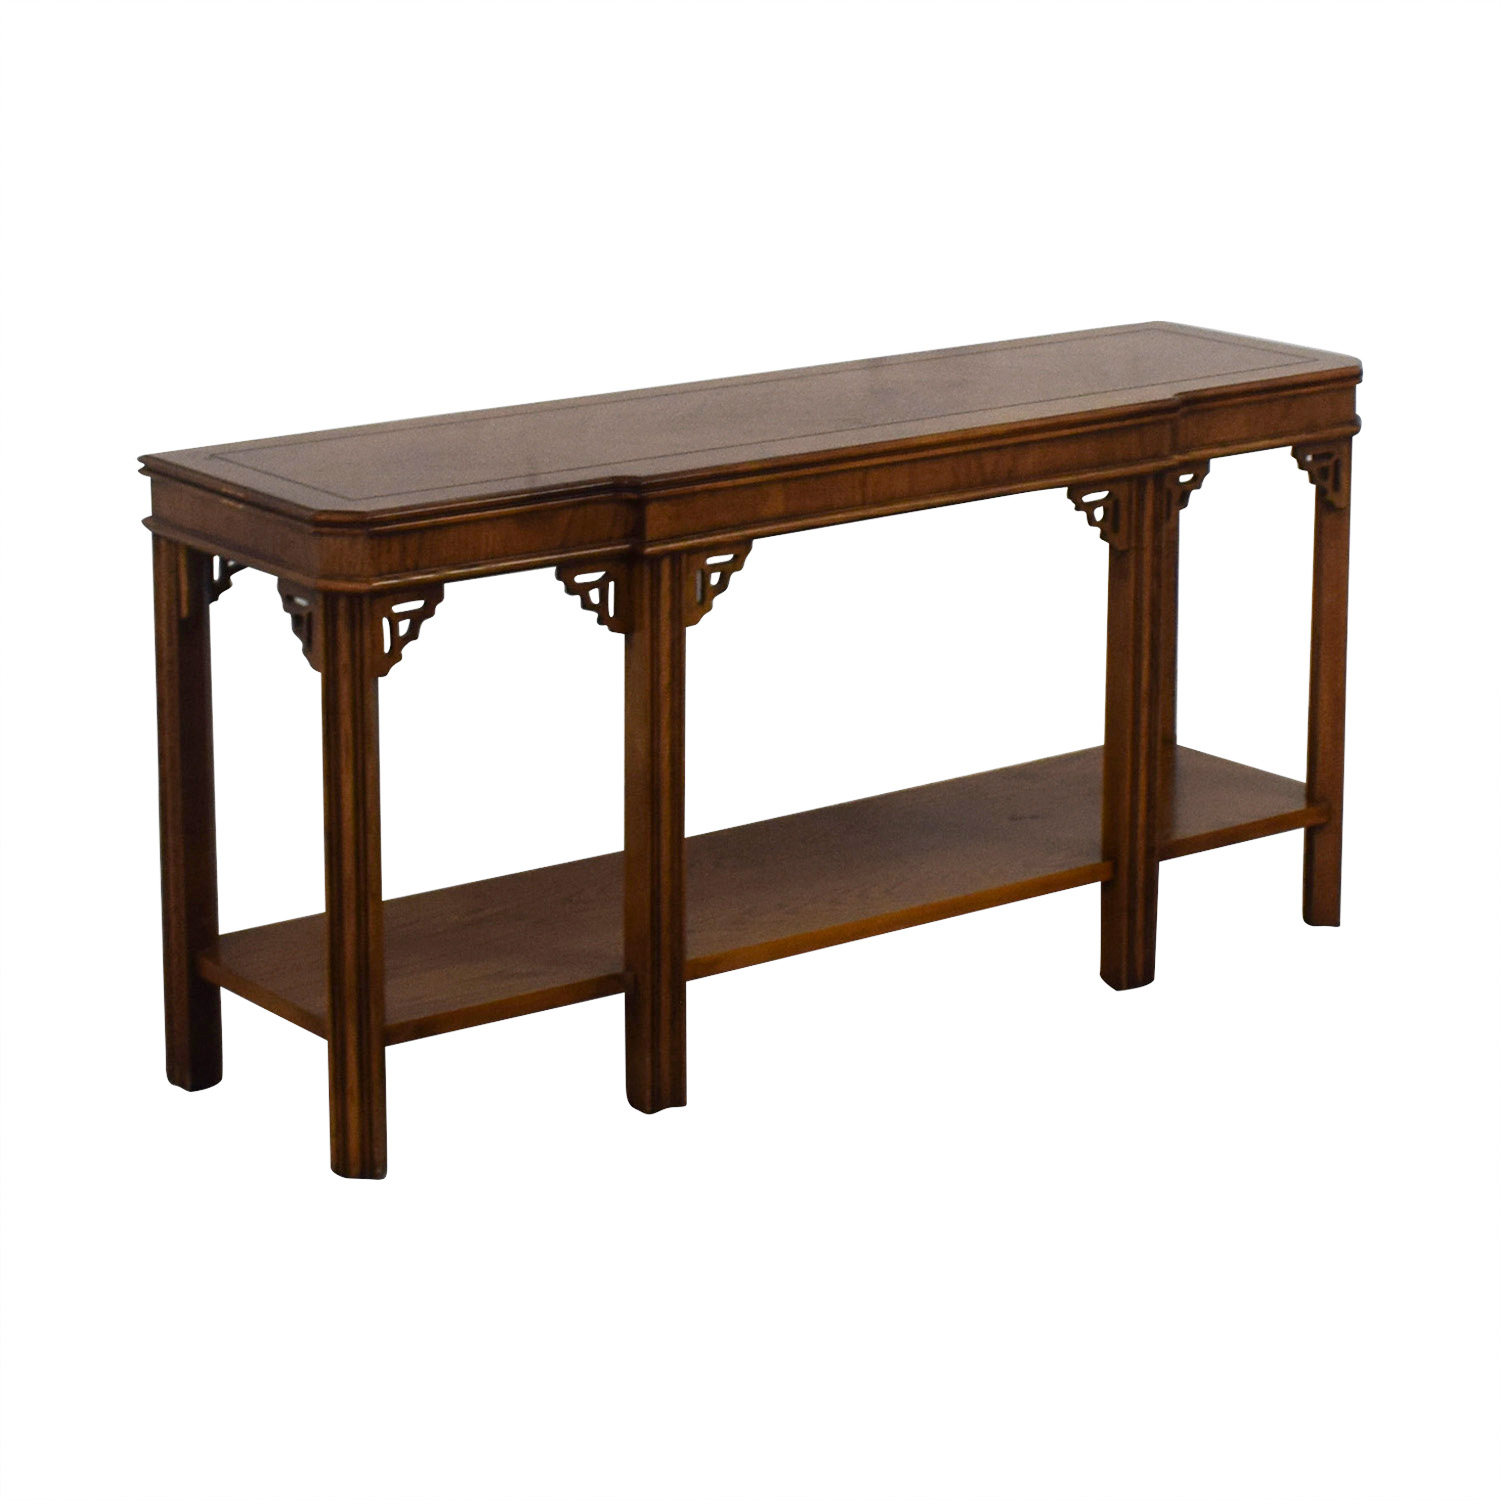 Lane Furniture Lane Furniture Decorative Console coupon